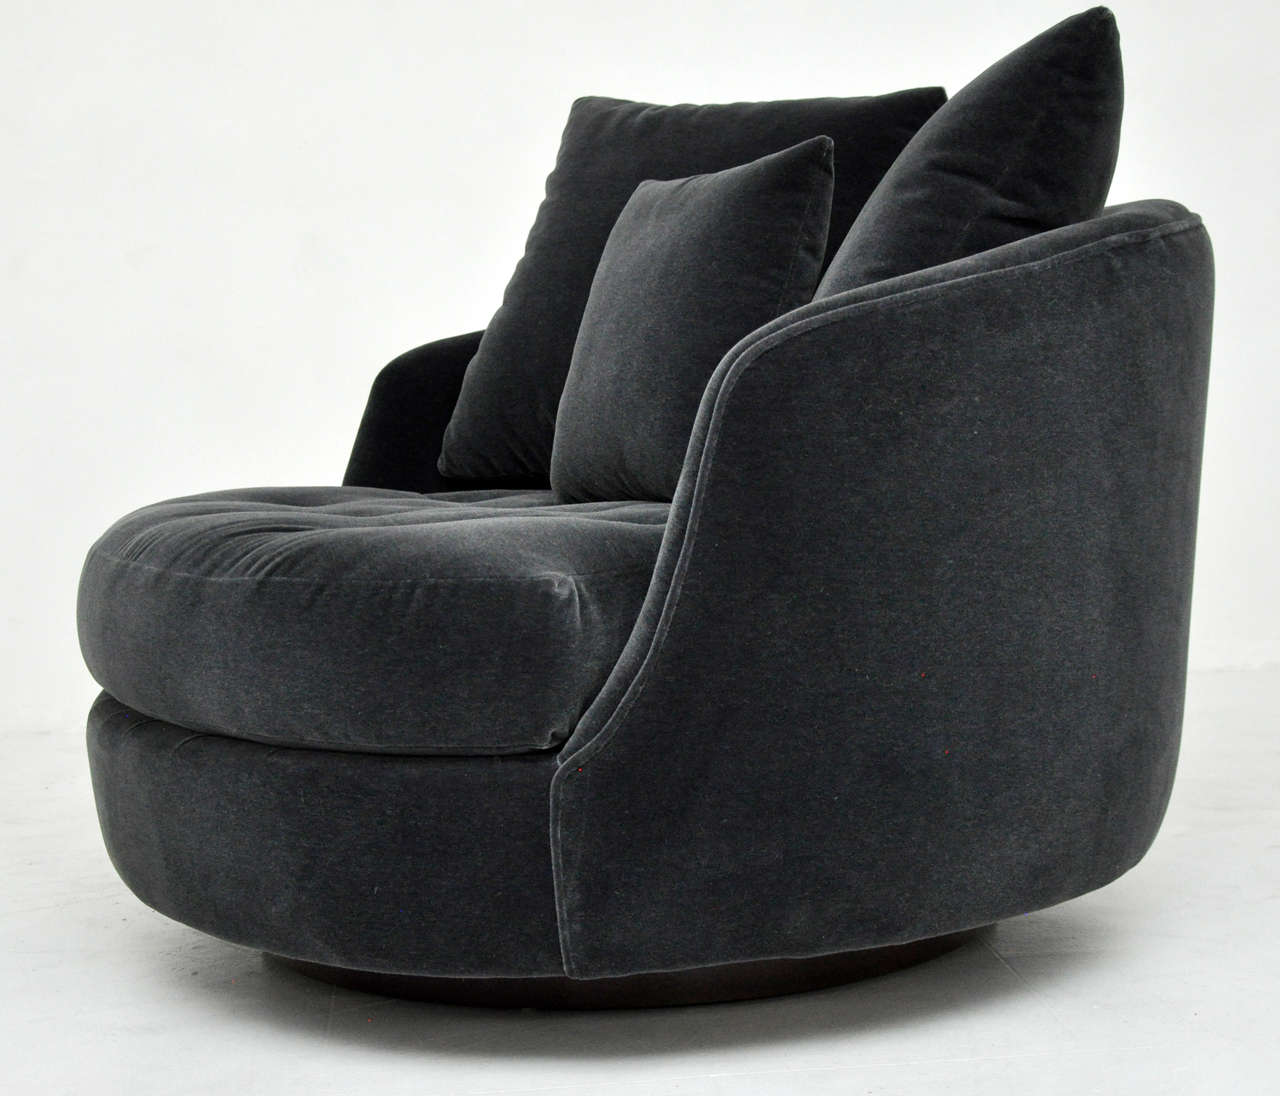 Milo Baughman Large Swivel Chair At 1stdibs